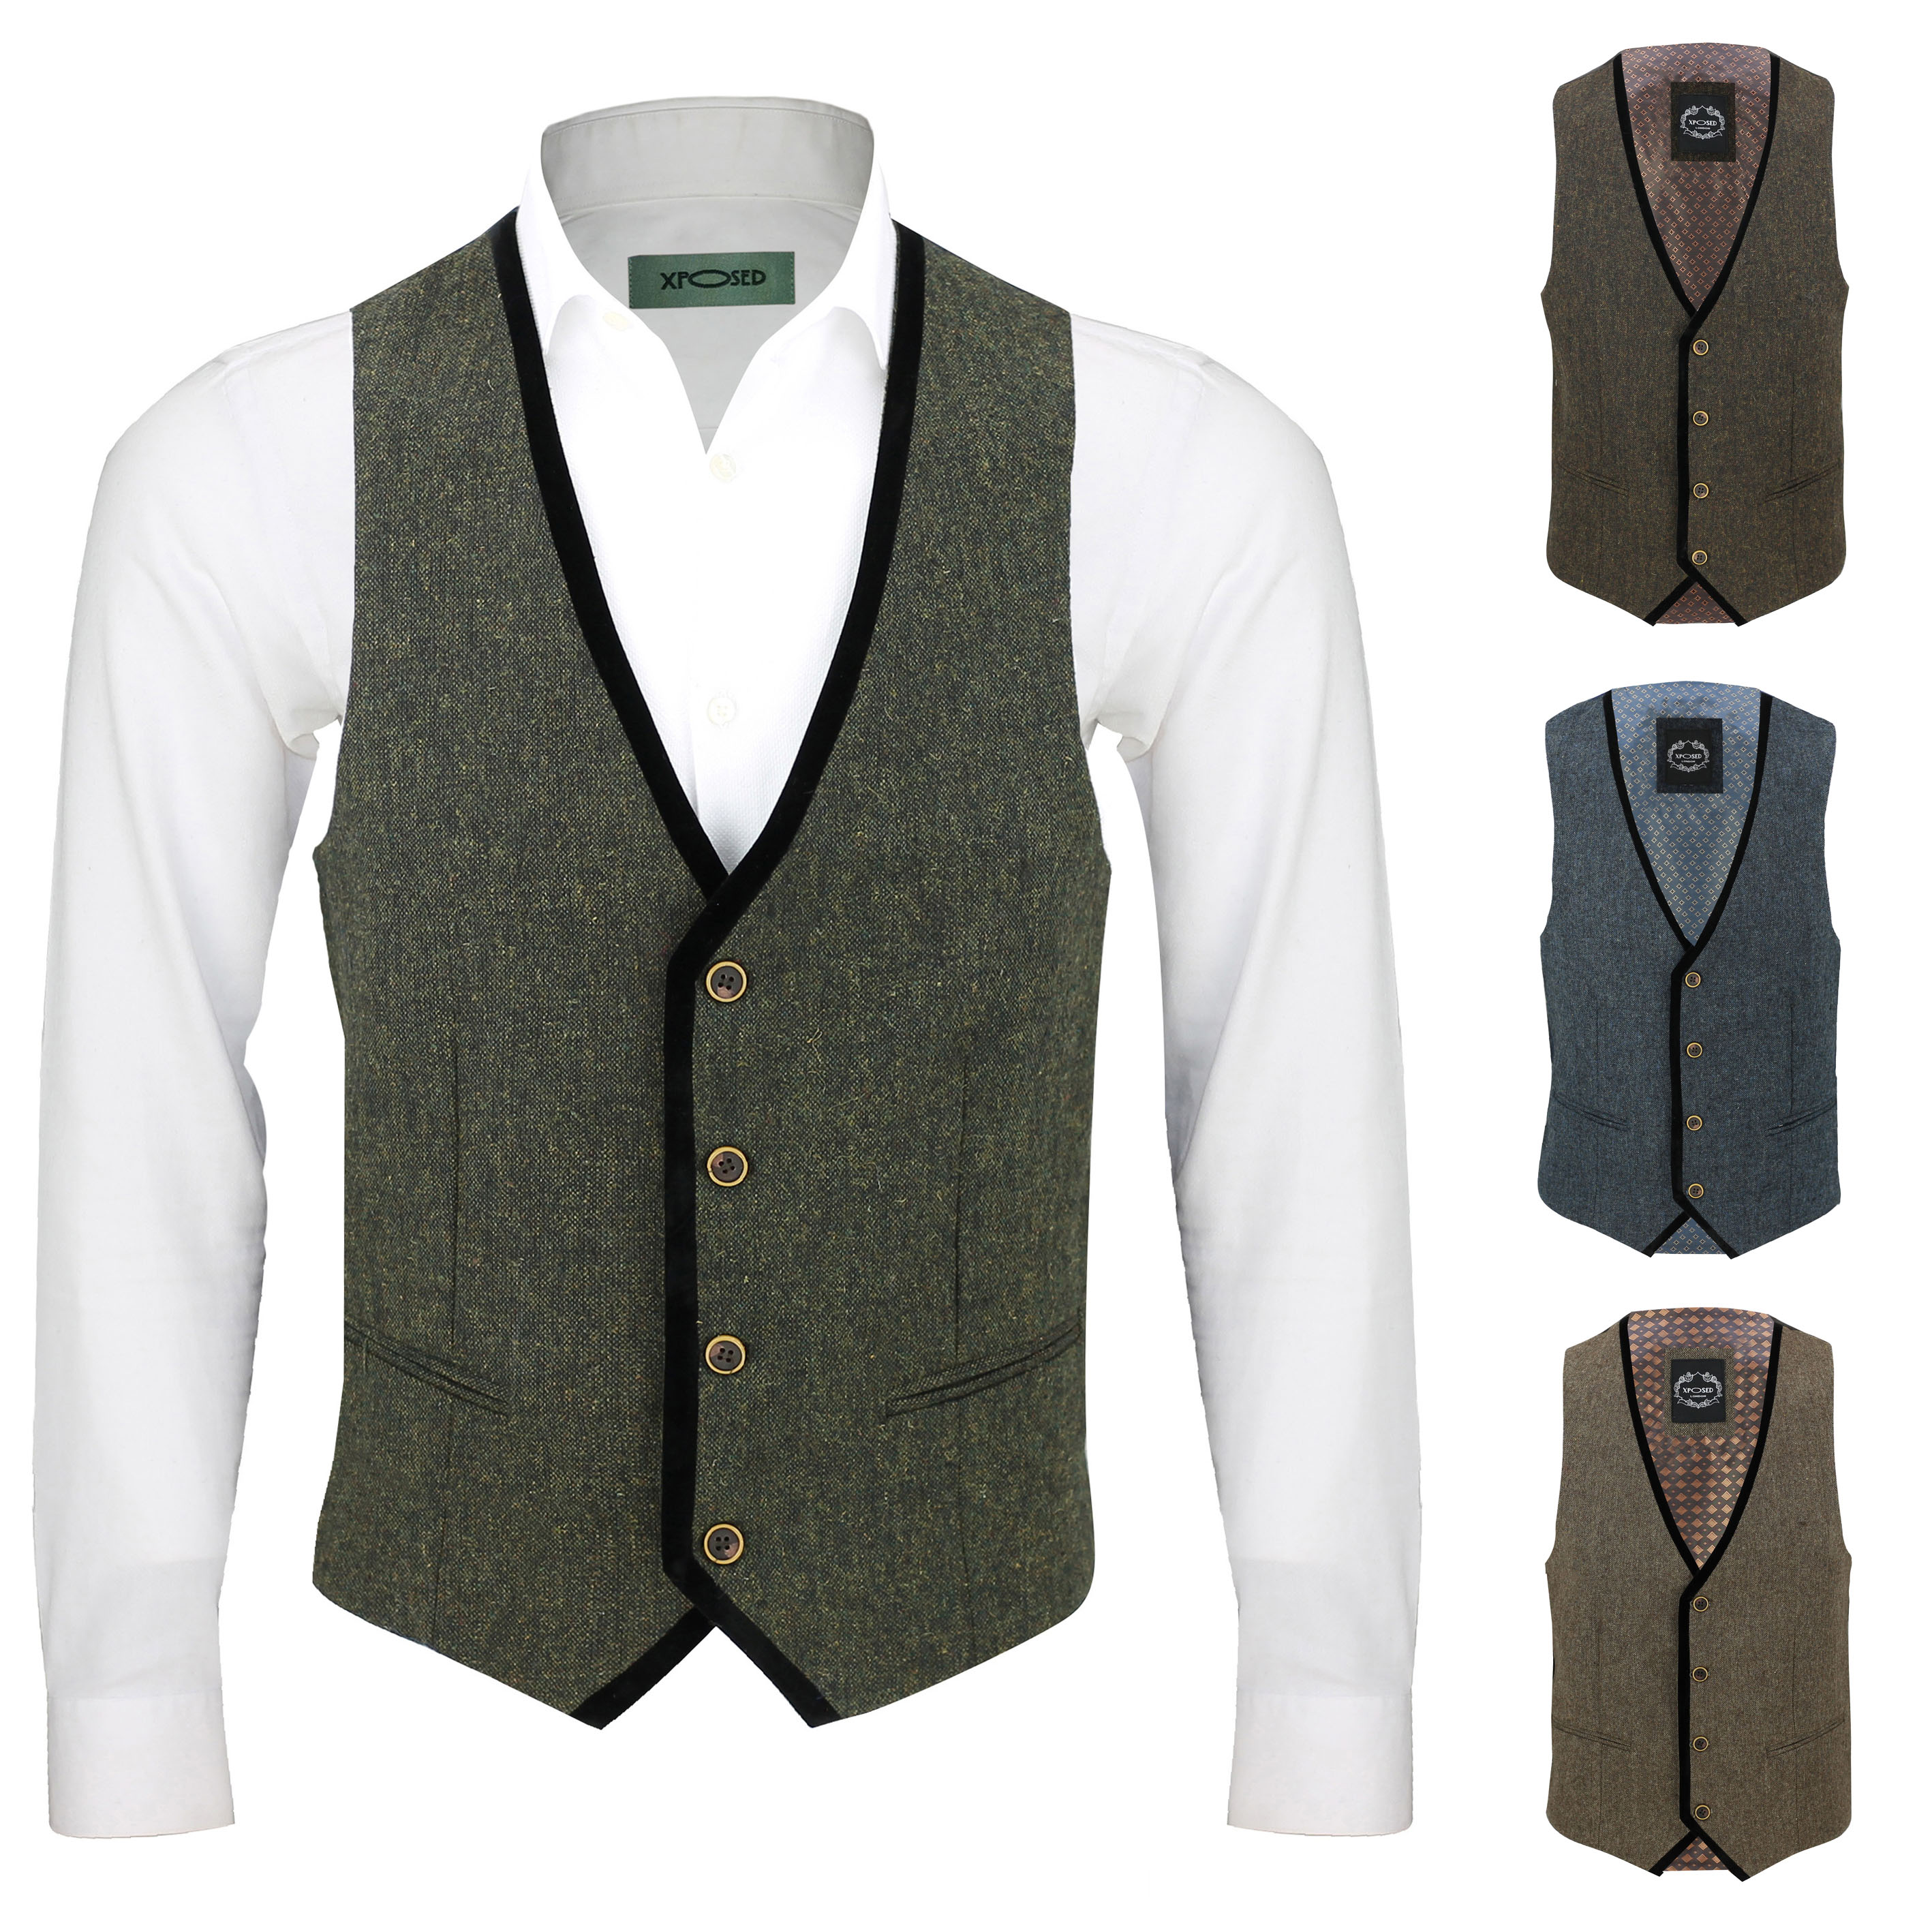 Mens 3-Button Herringbone Wool Tweed Slim Fit Vest Waistcoat Brown Burgundy Blue